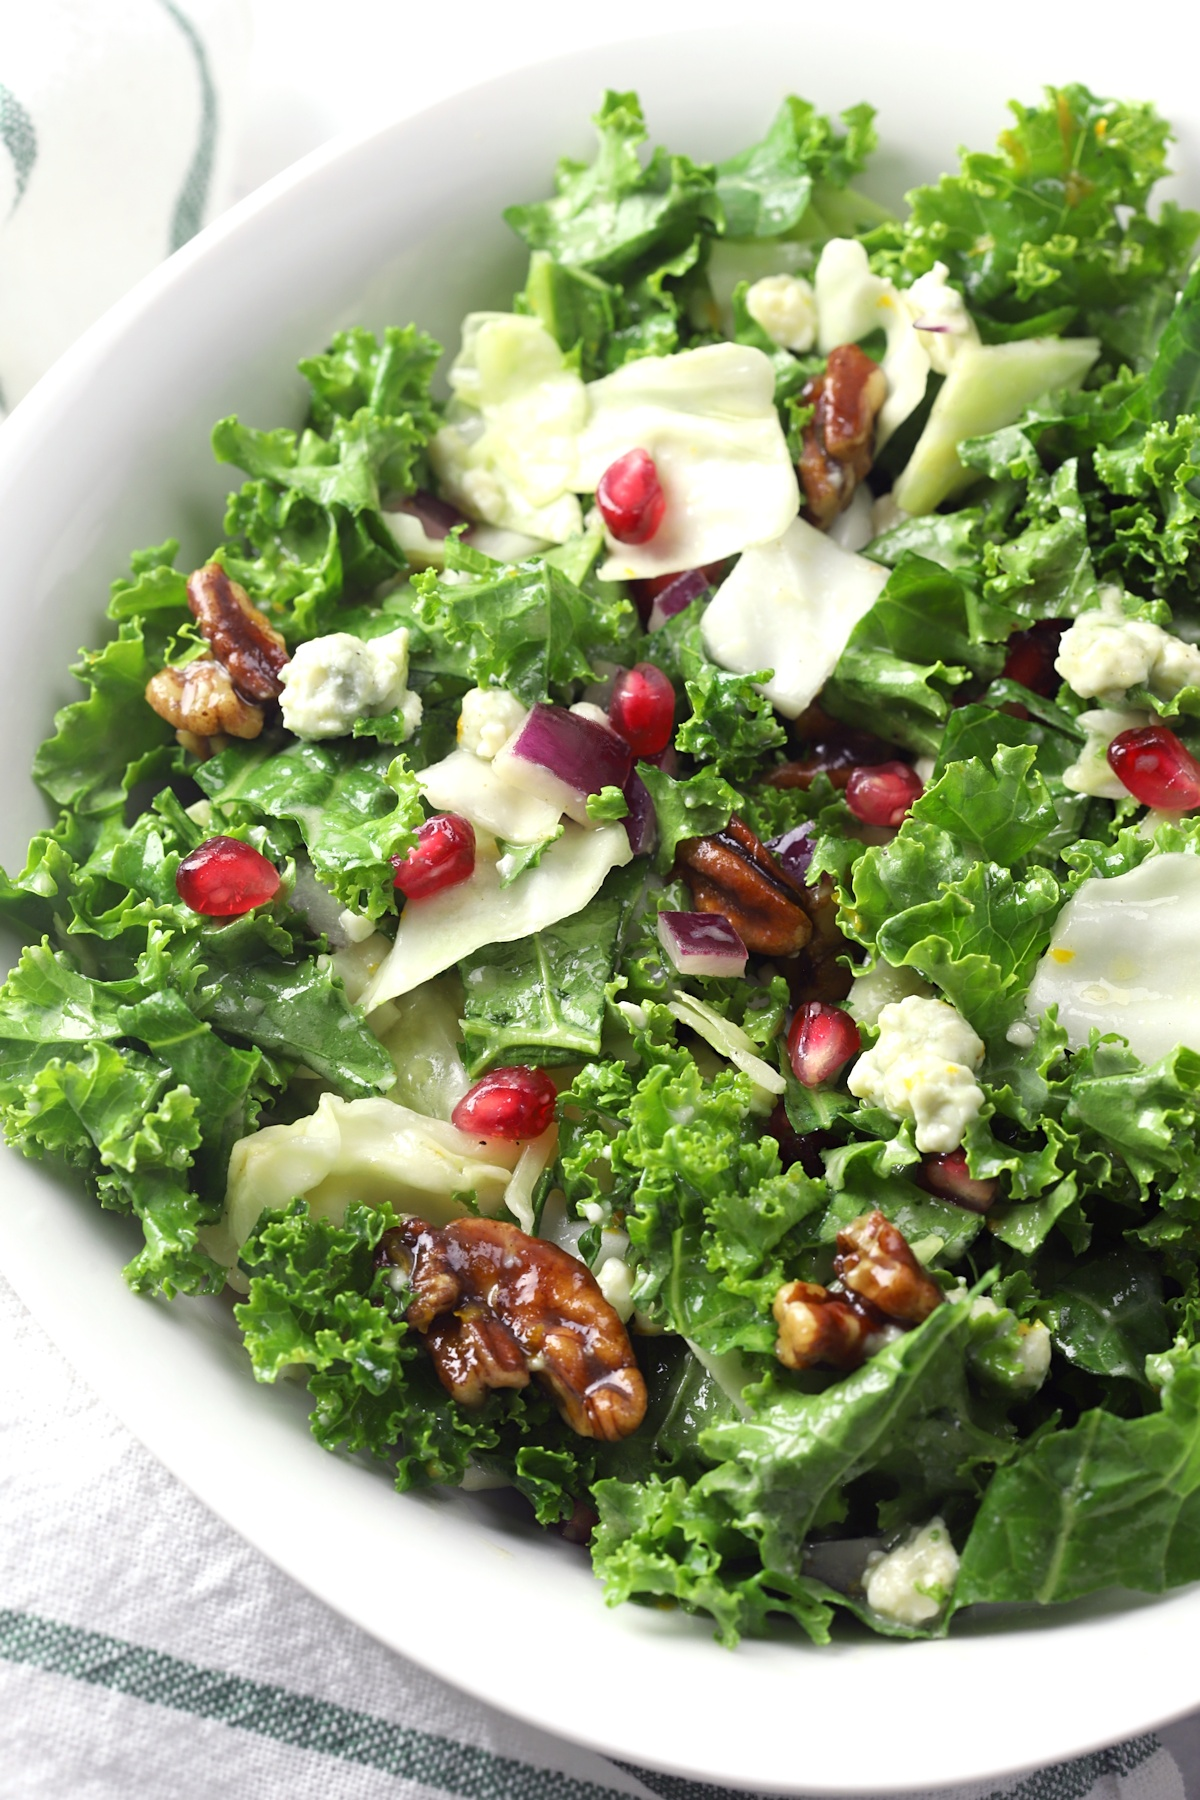 Kale and cabbage salad in a white bowl, topped with pomegranate arils and pecans.